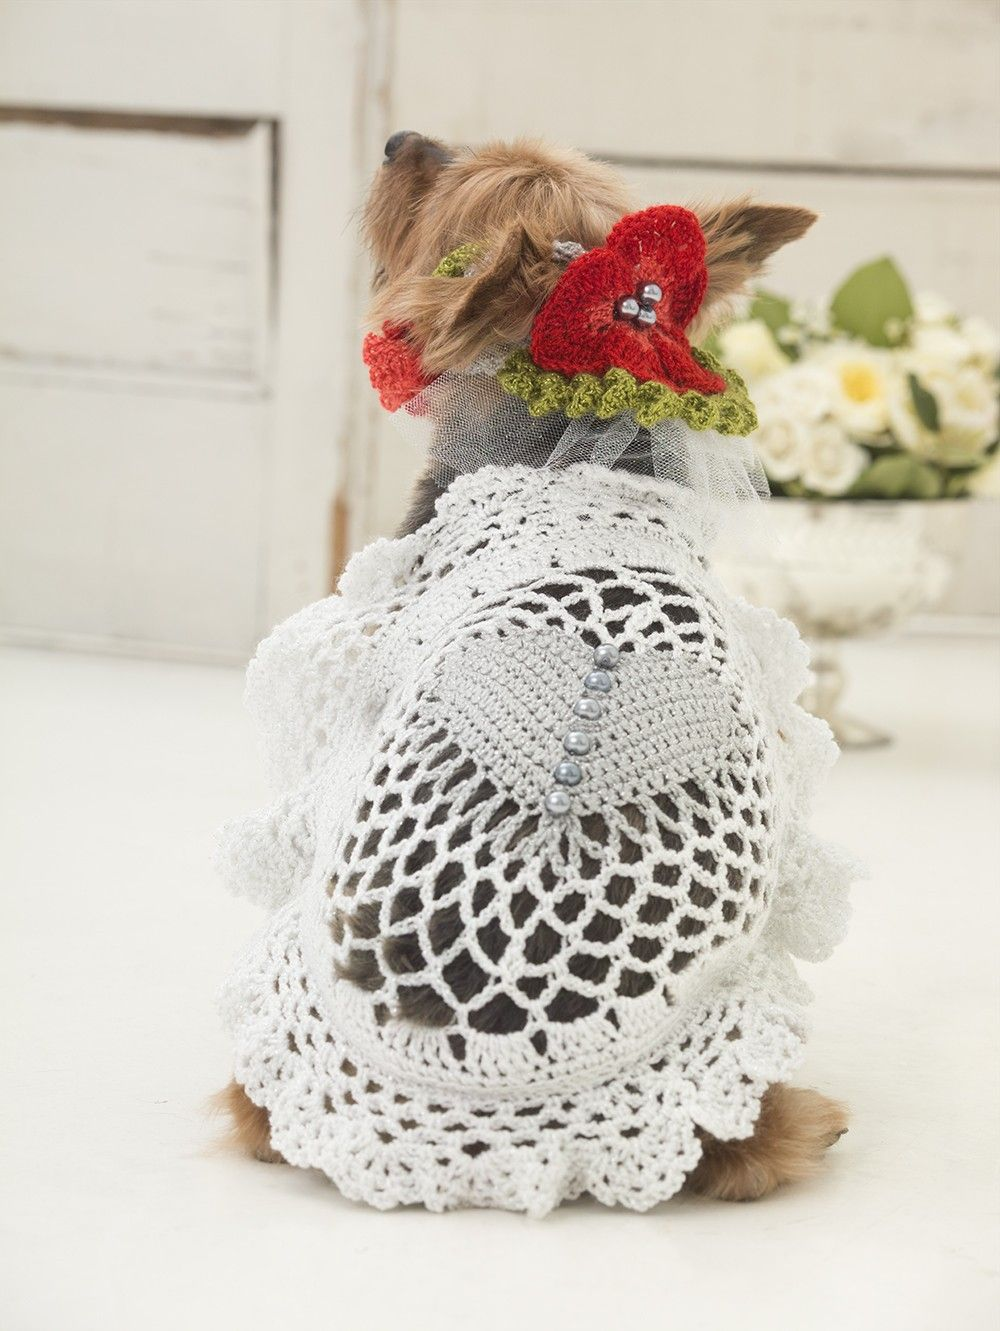 Say Woof To The Dress (Crochet) | dogs! and other animals | Pinterest